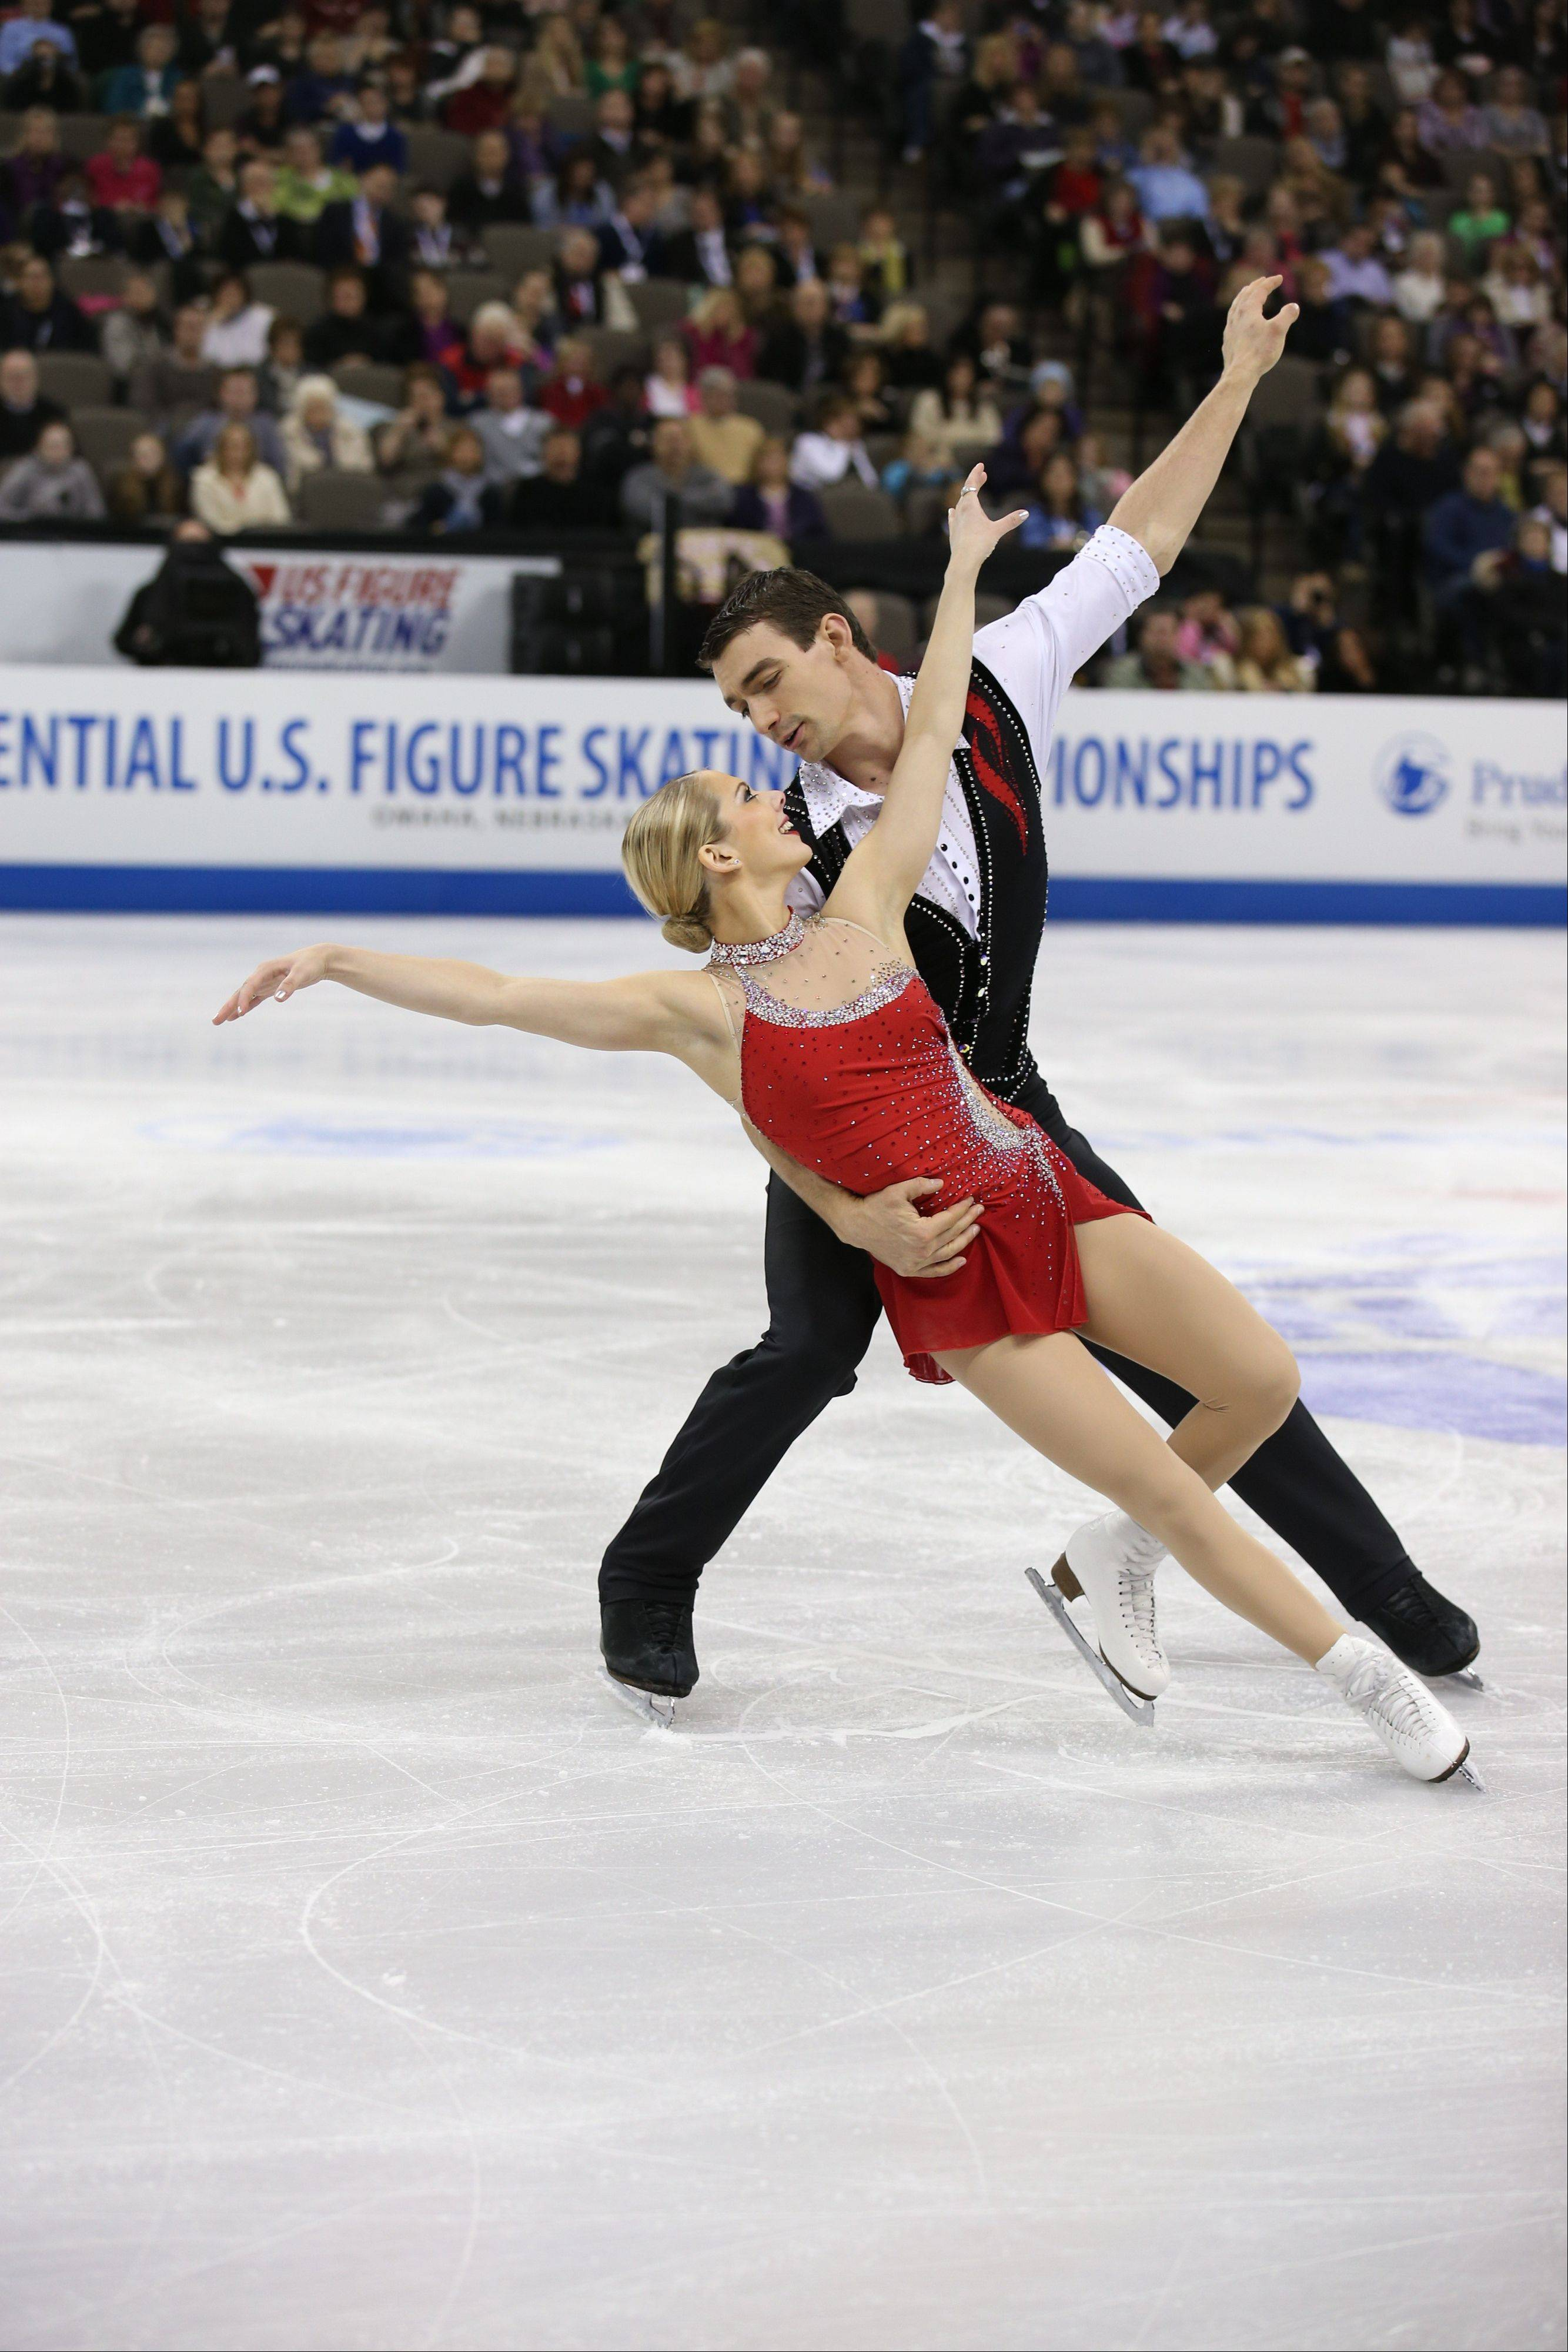 Addison native Alexa Scimeca and her pairs figure skating partner, Chris Knierim, say they plan to keep skating through the 2018 Olympics. They'll compete this weekend for a spot in the 2014 games in Sochi, Russia.